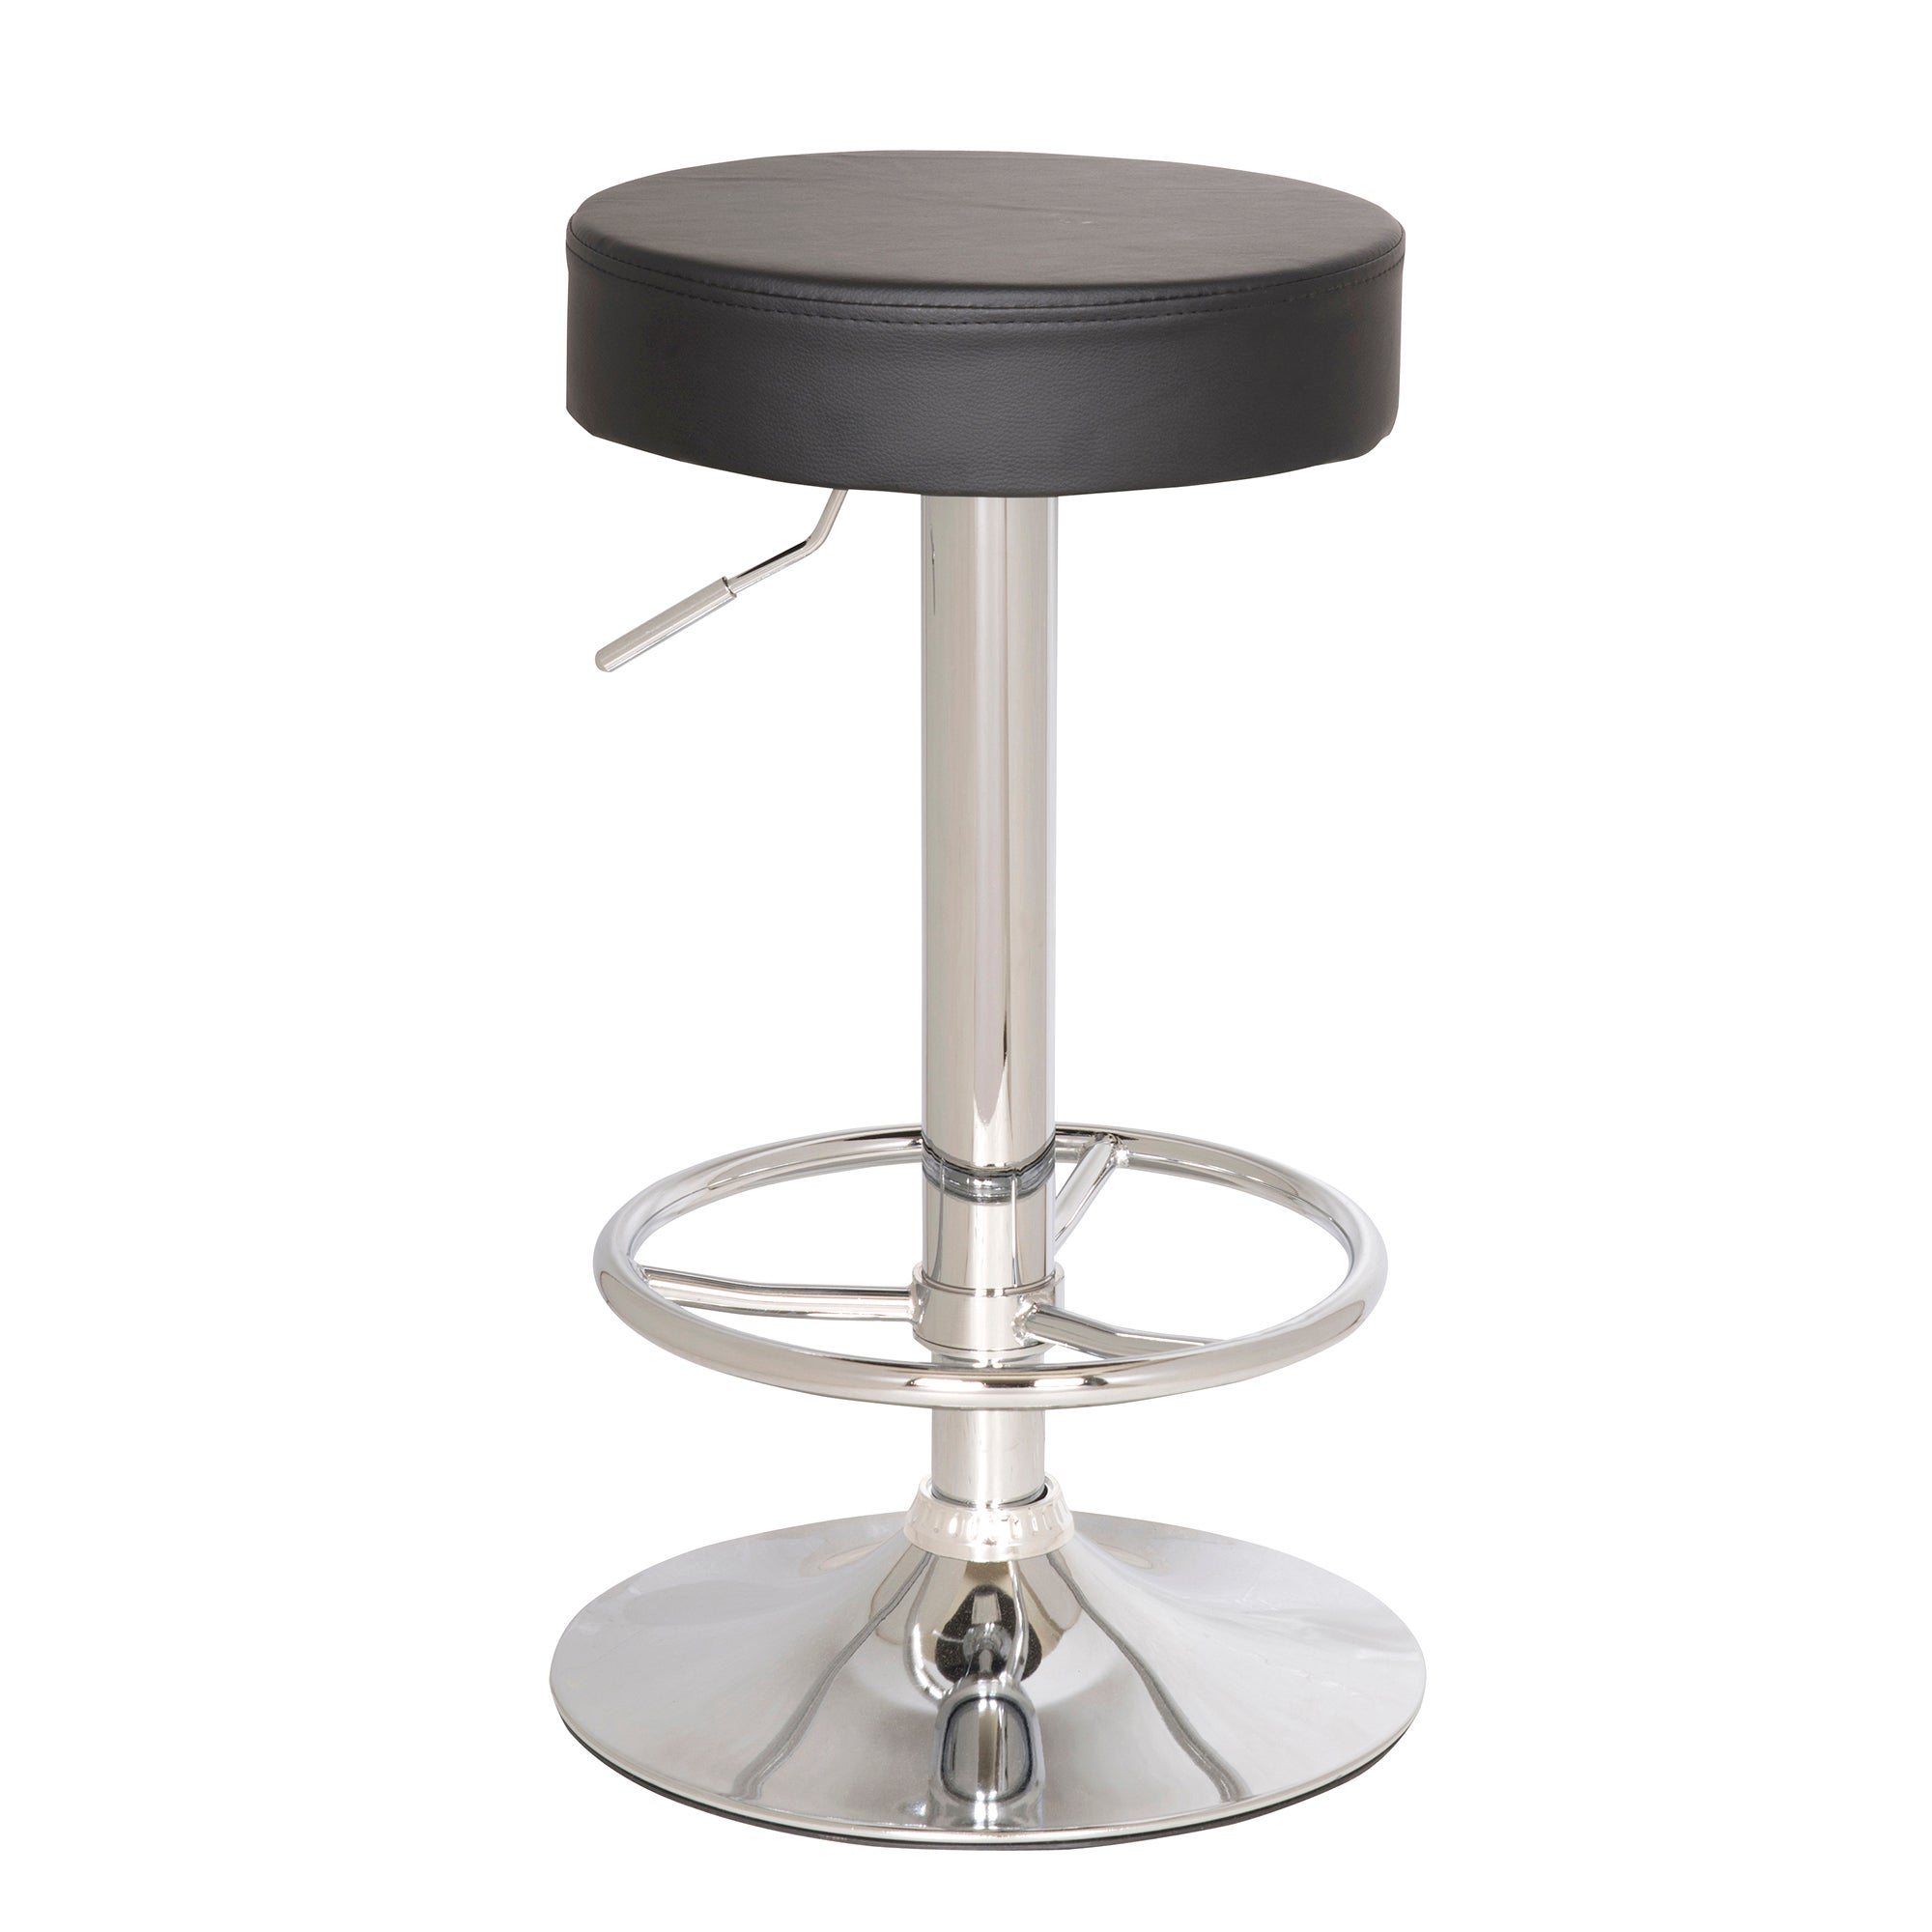 Vesper Modern Upholstered Bar Stool